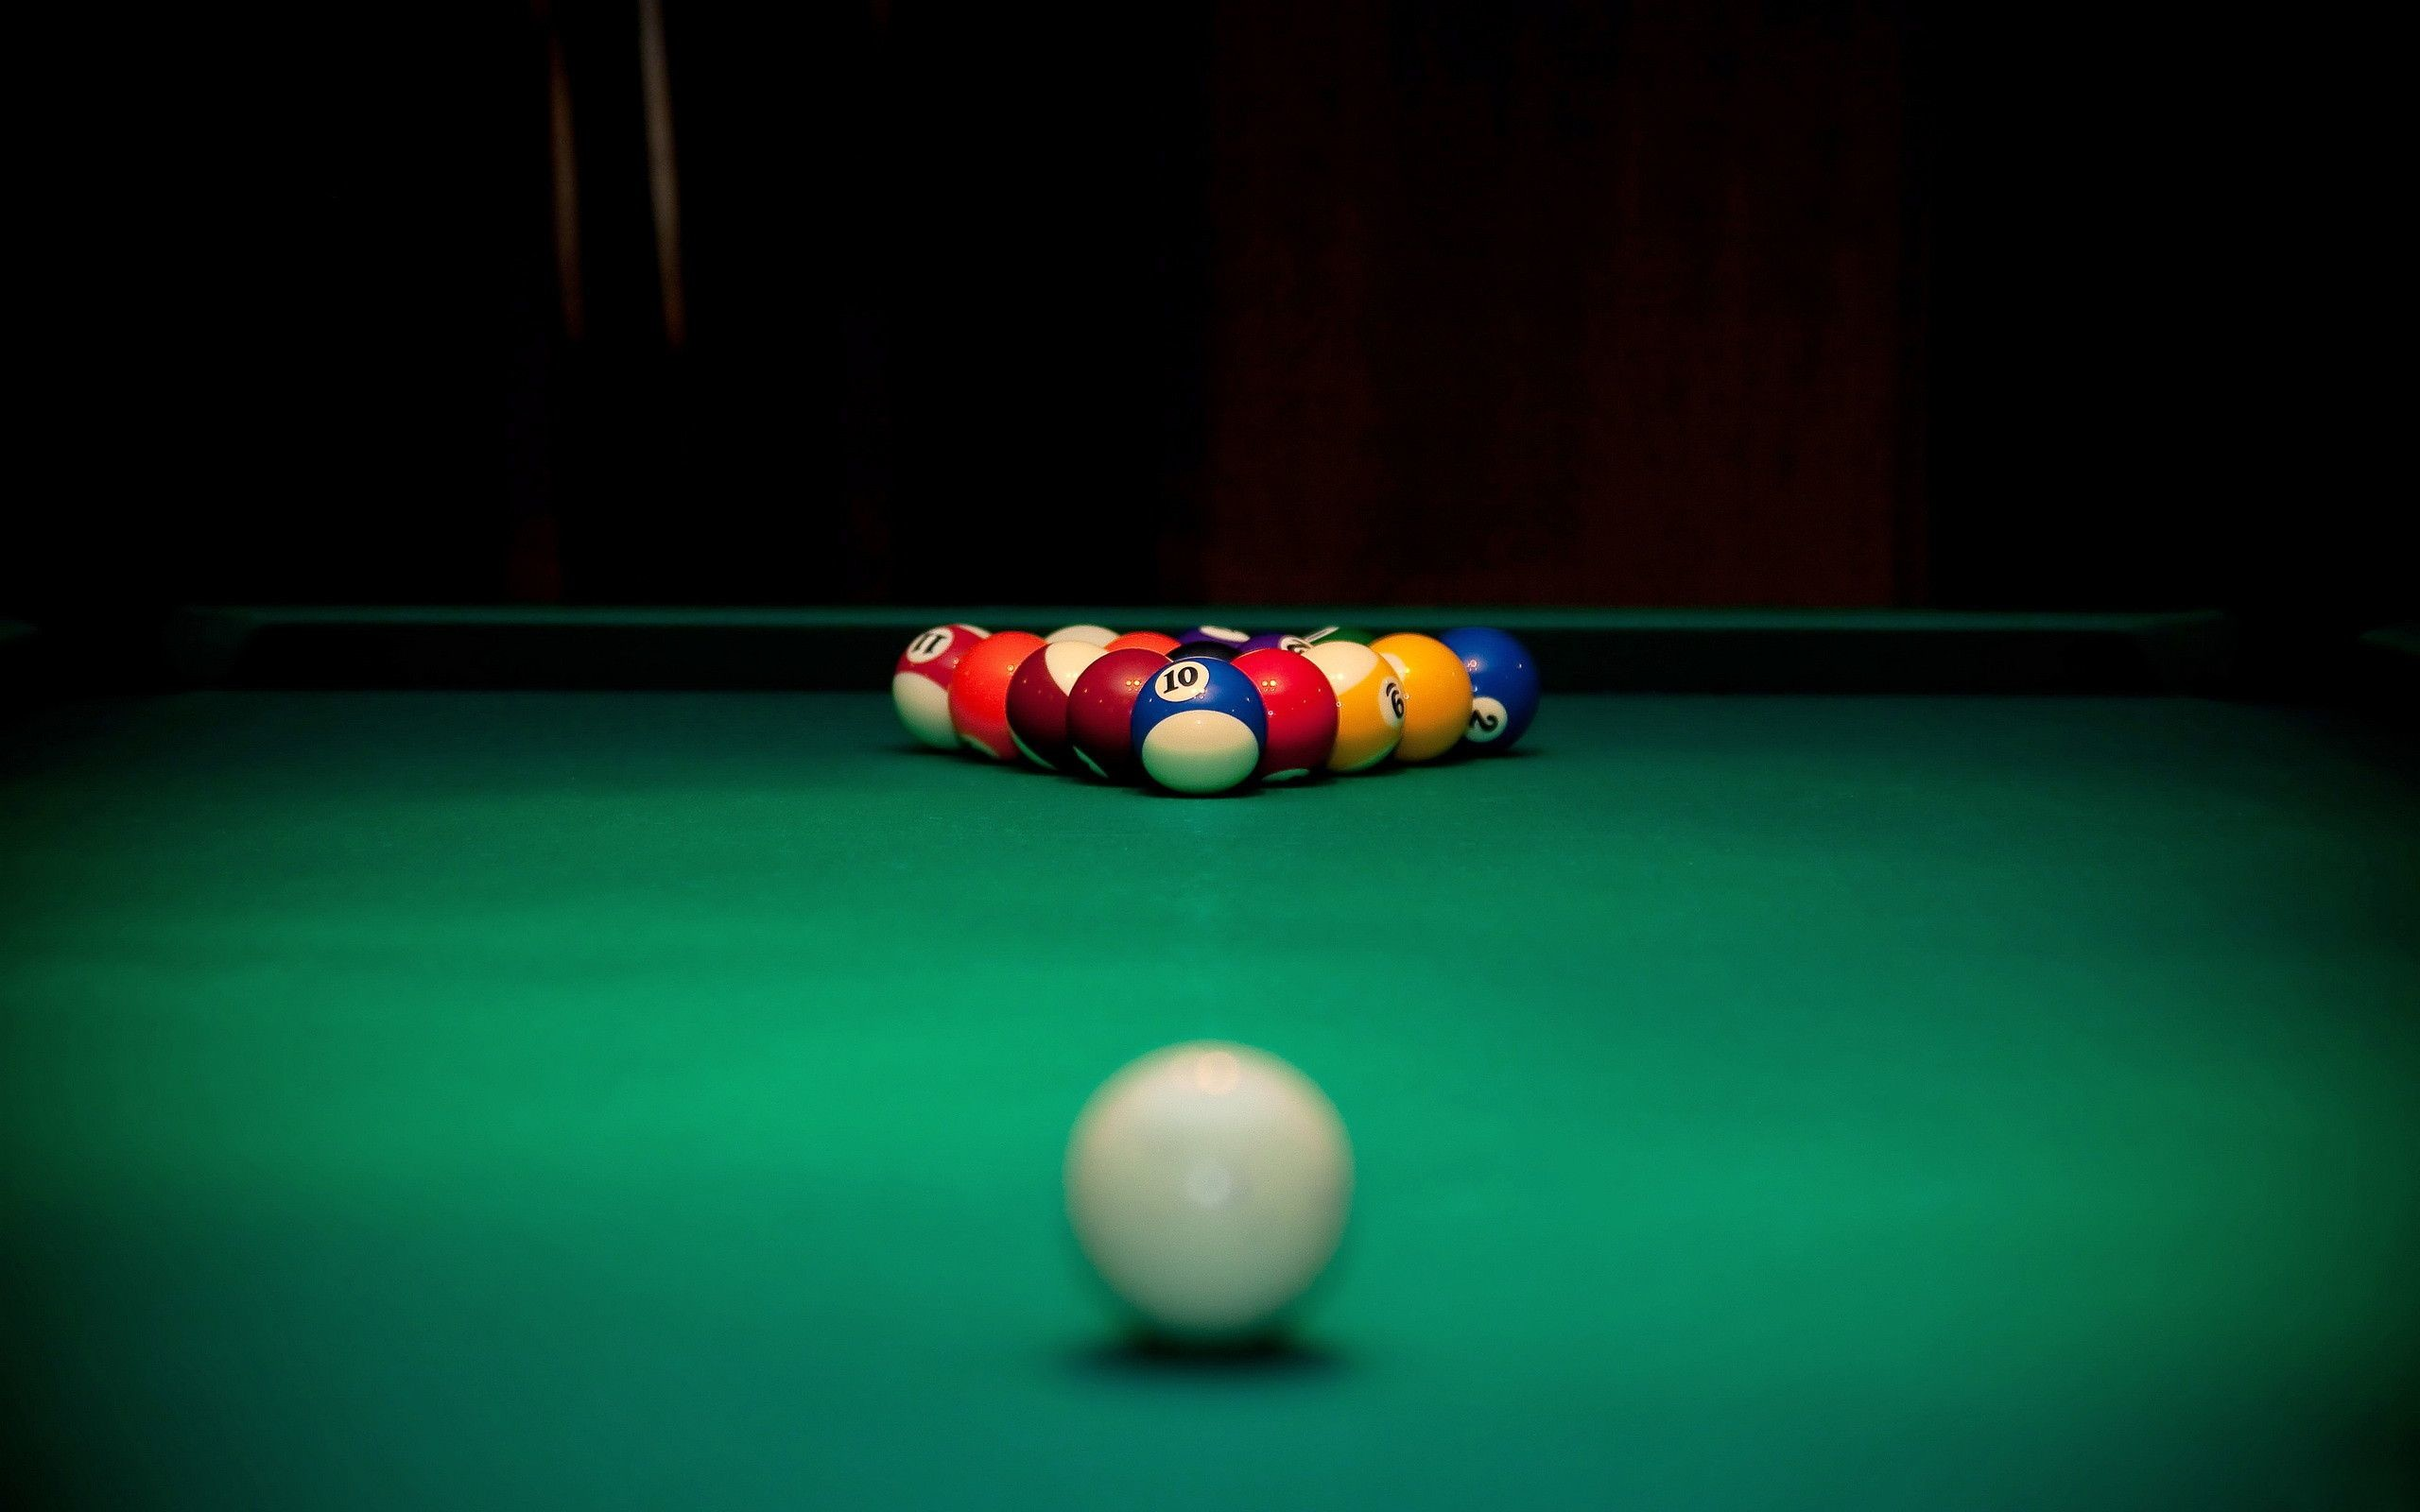 8 Ball Pool Wallpapers - 8 Ball Pool Backgrounds , HD Wallpaper & Backgrounds